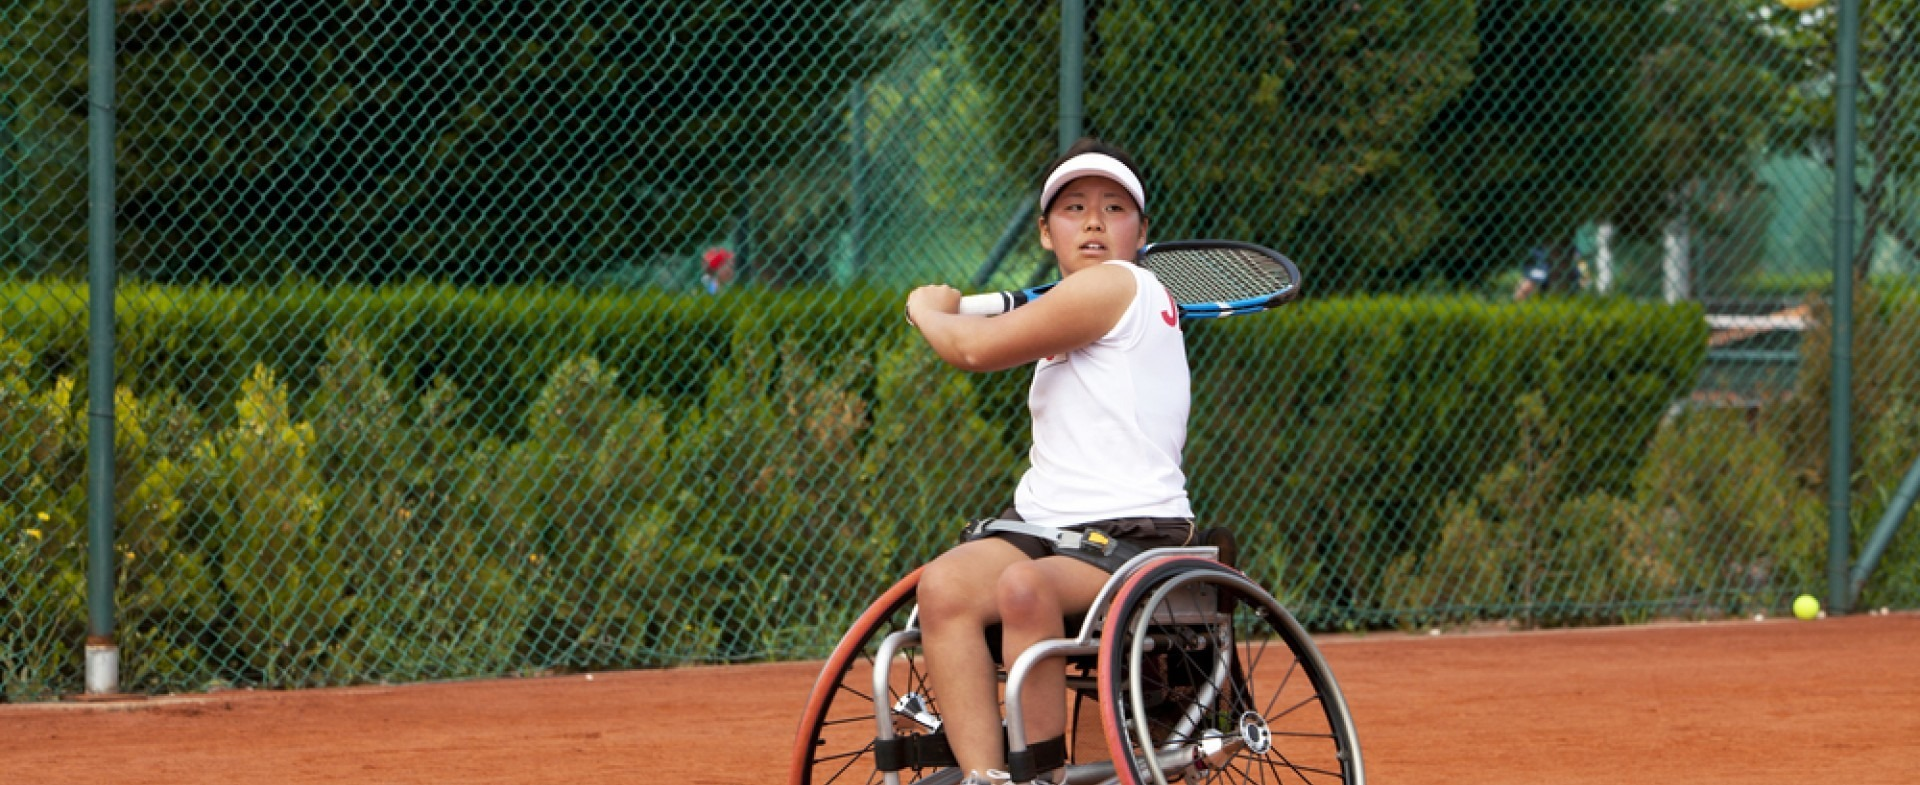 Woman playing tennis in a wheelchair